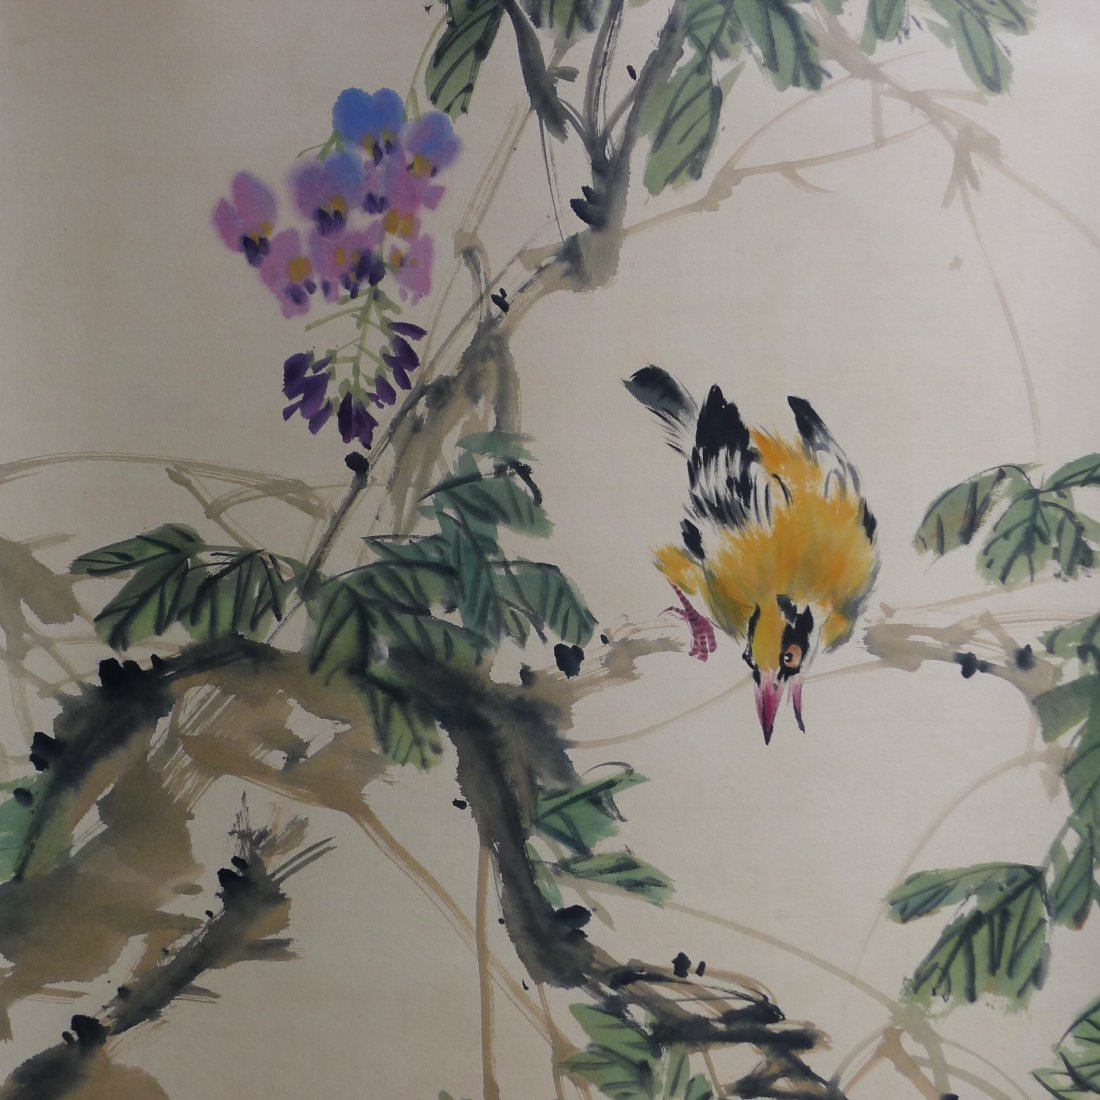 CHINESE PAINTING BY WANG XIETAO